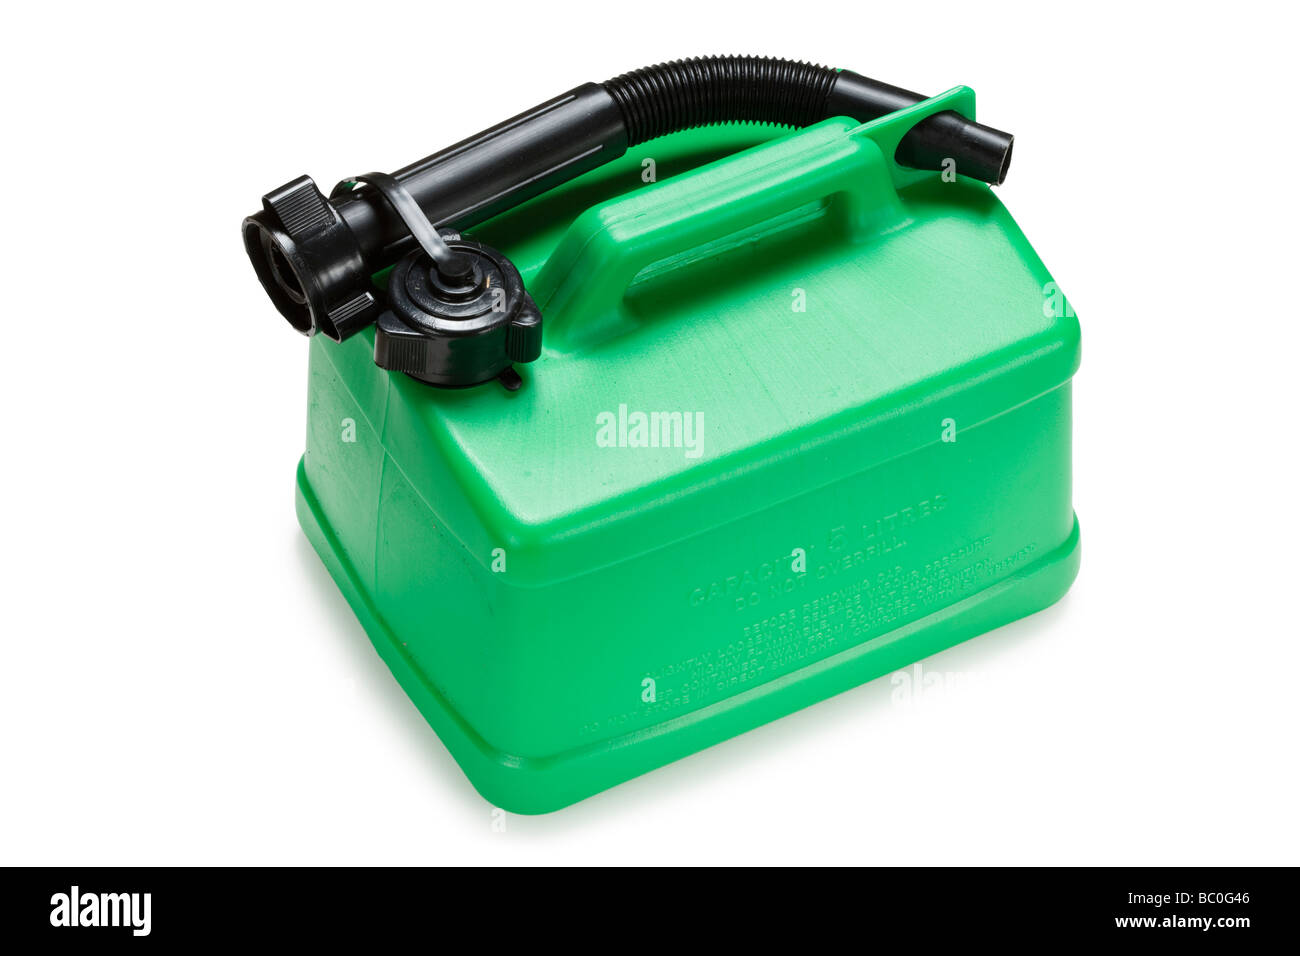 Fuel can. Petrol/diesel. - Stock Image